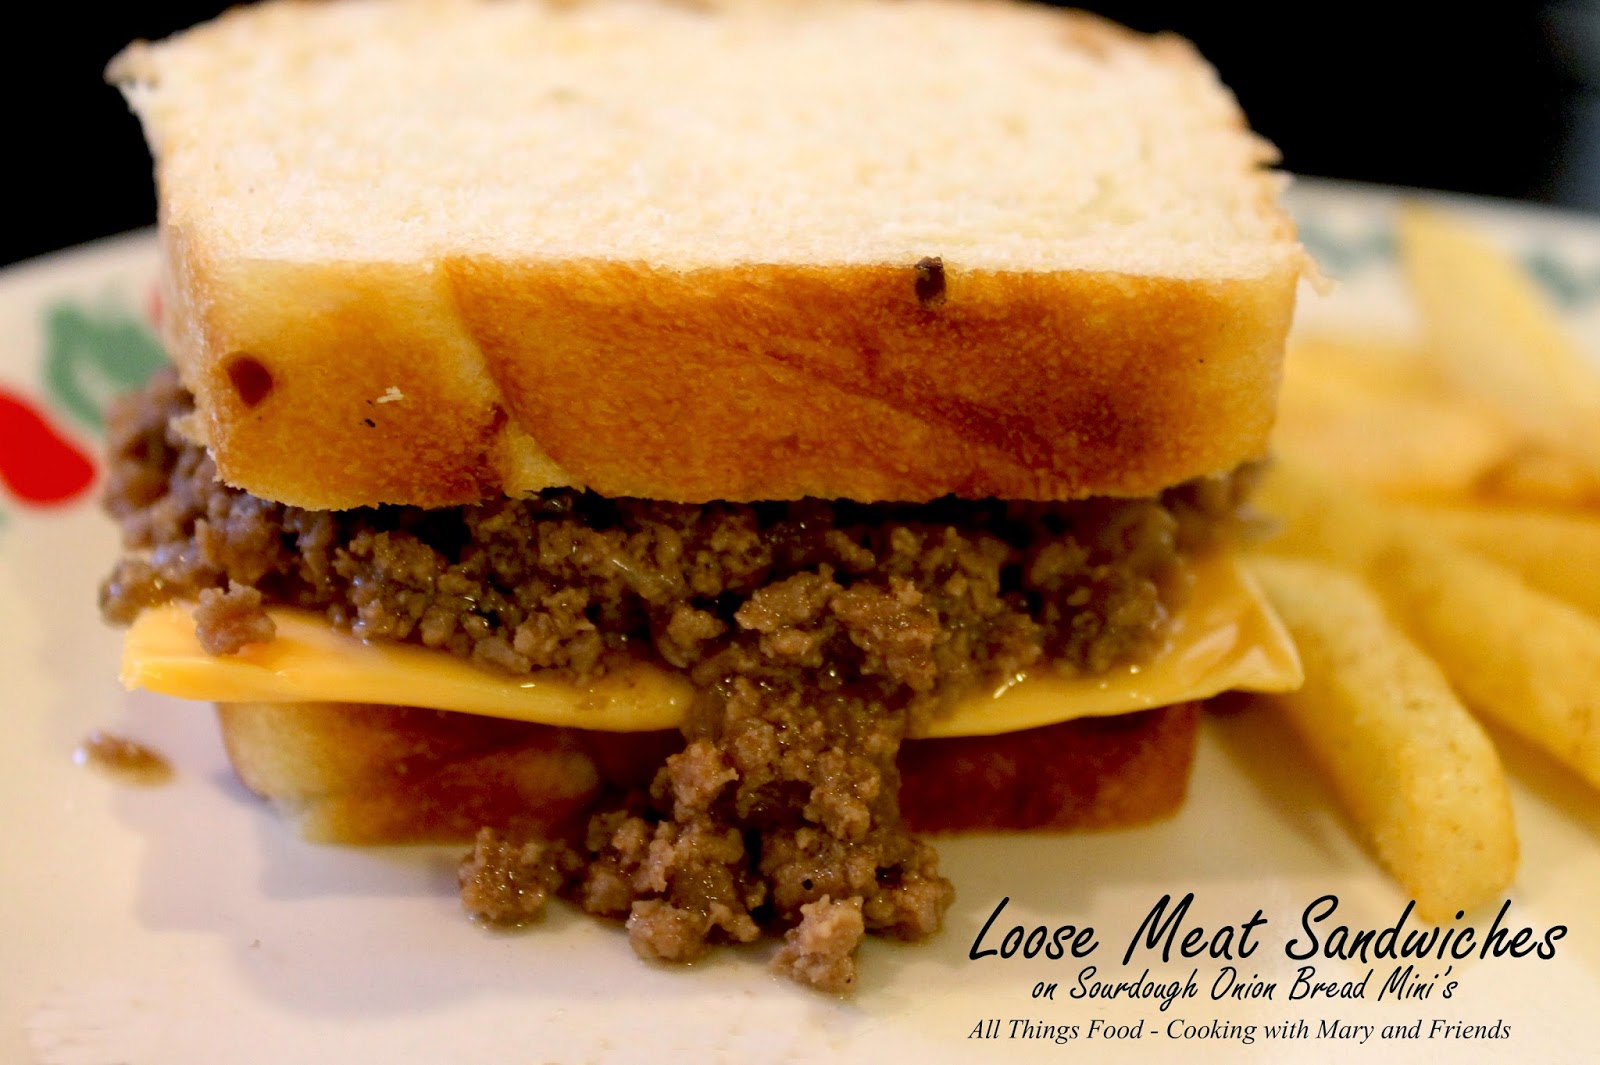 how to make loose meat sandwiches